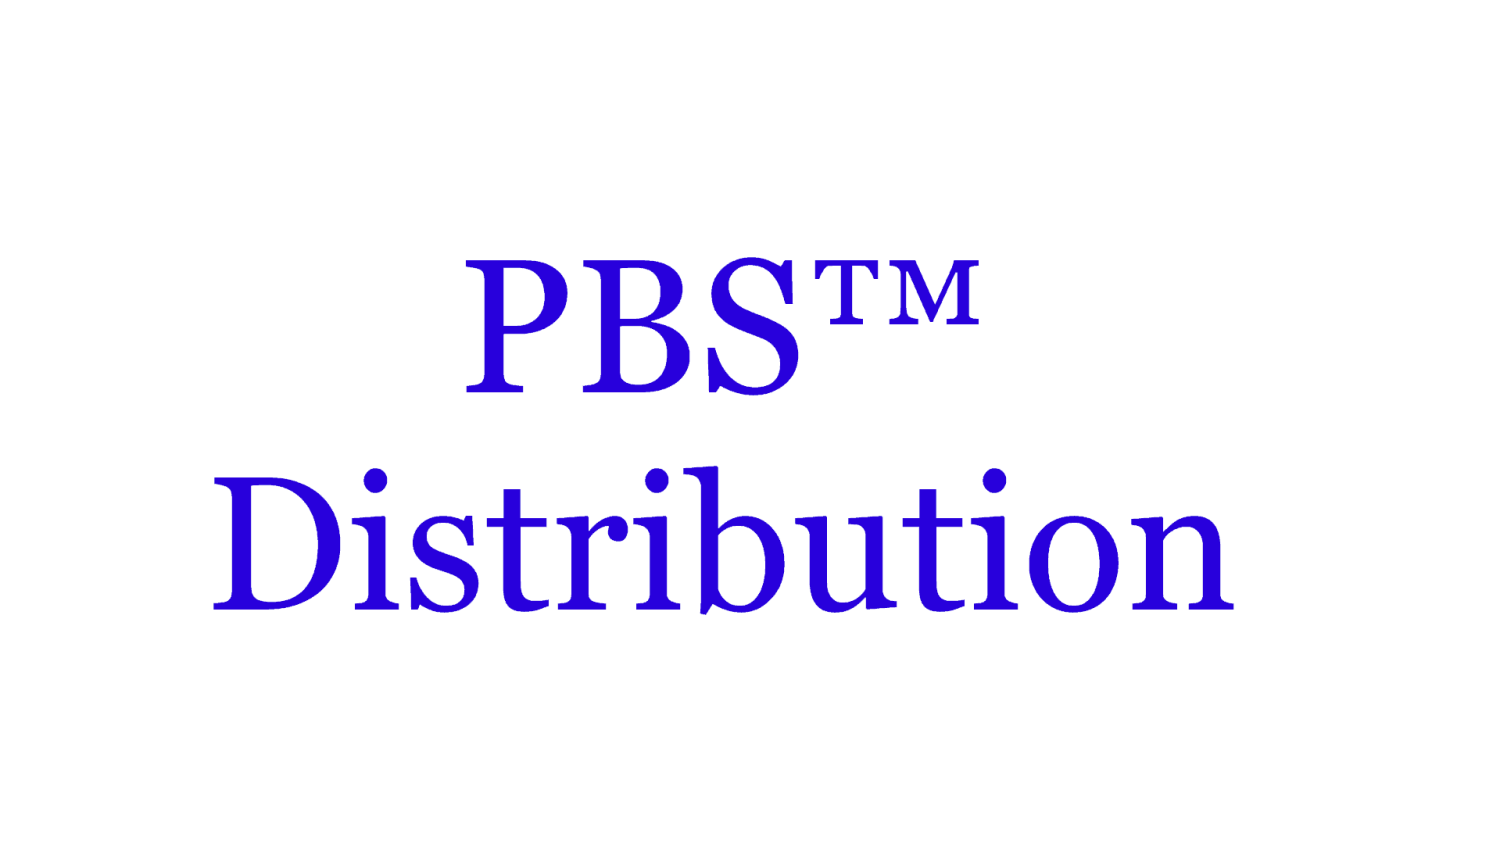 logo for pbs distribution software for small business